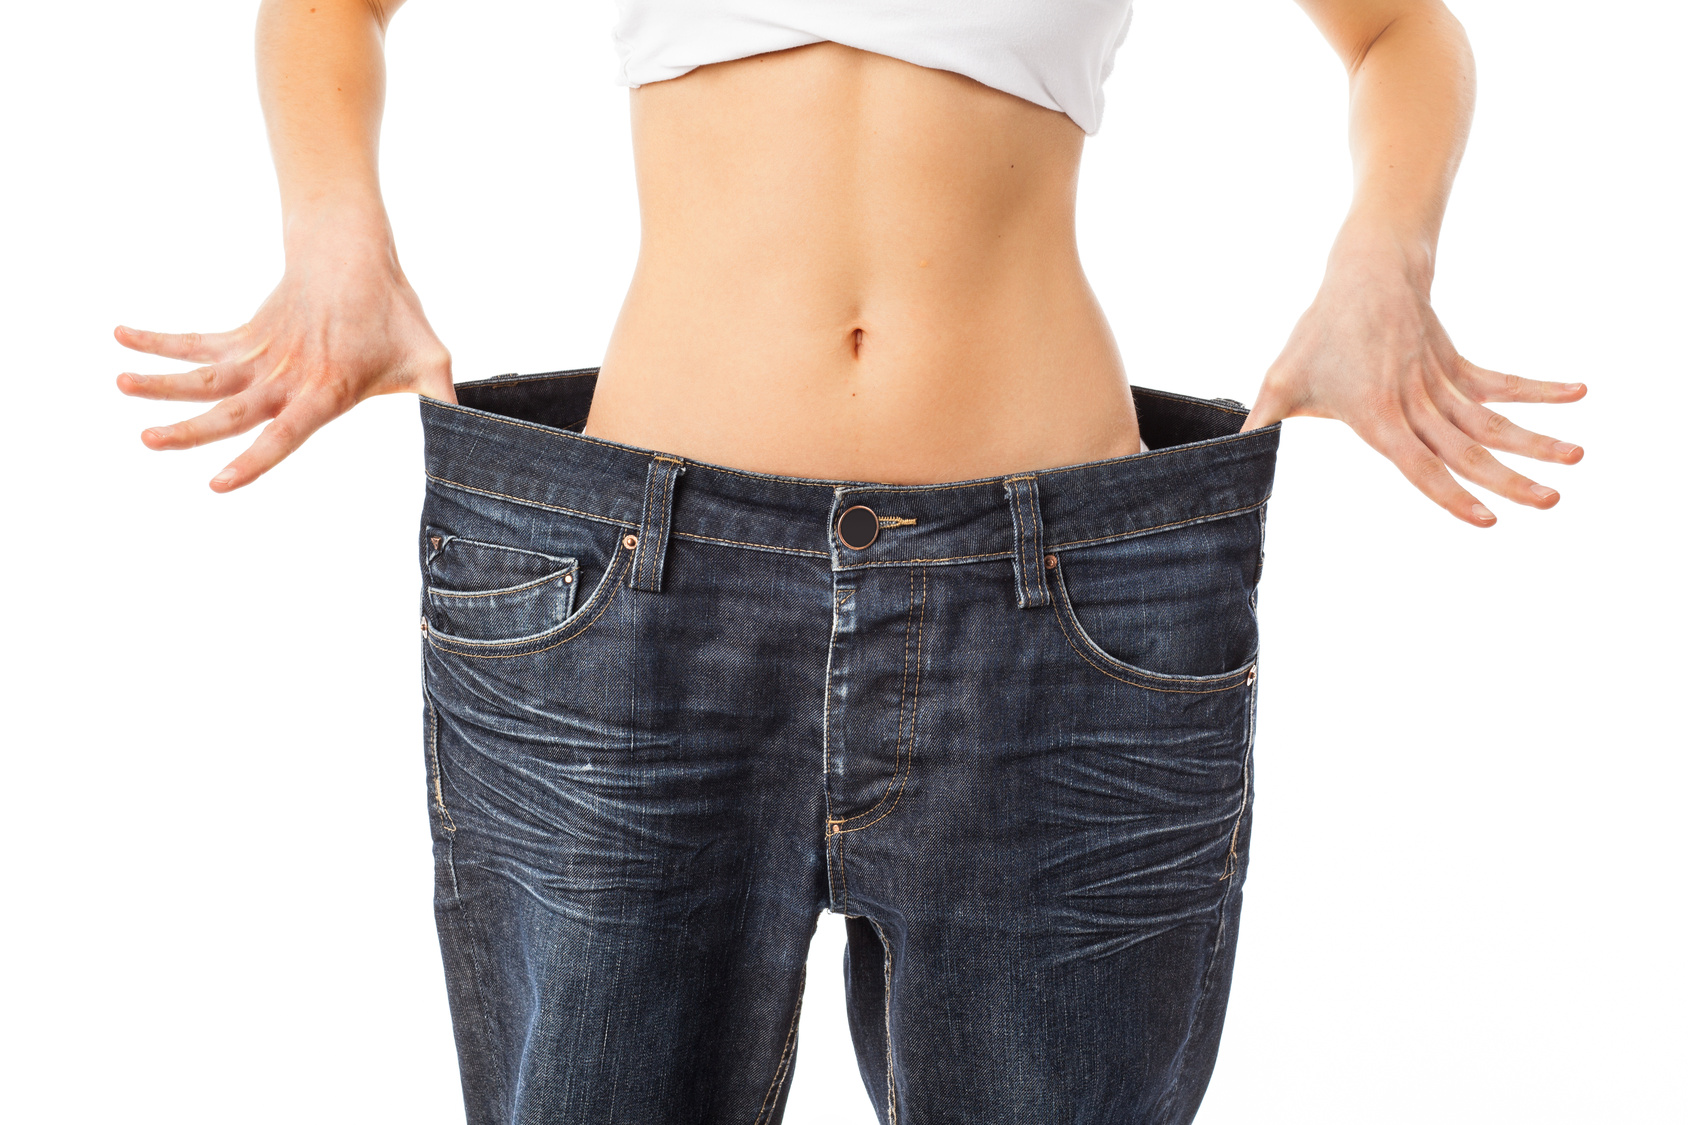 Acupuncture is effective for assisting in weight loss